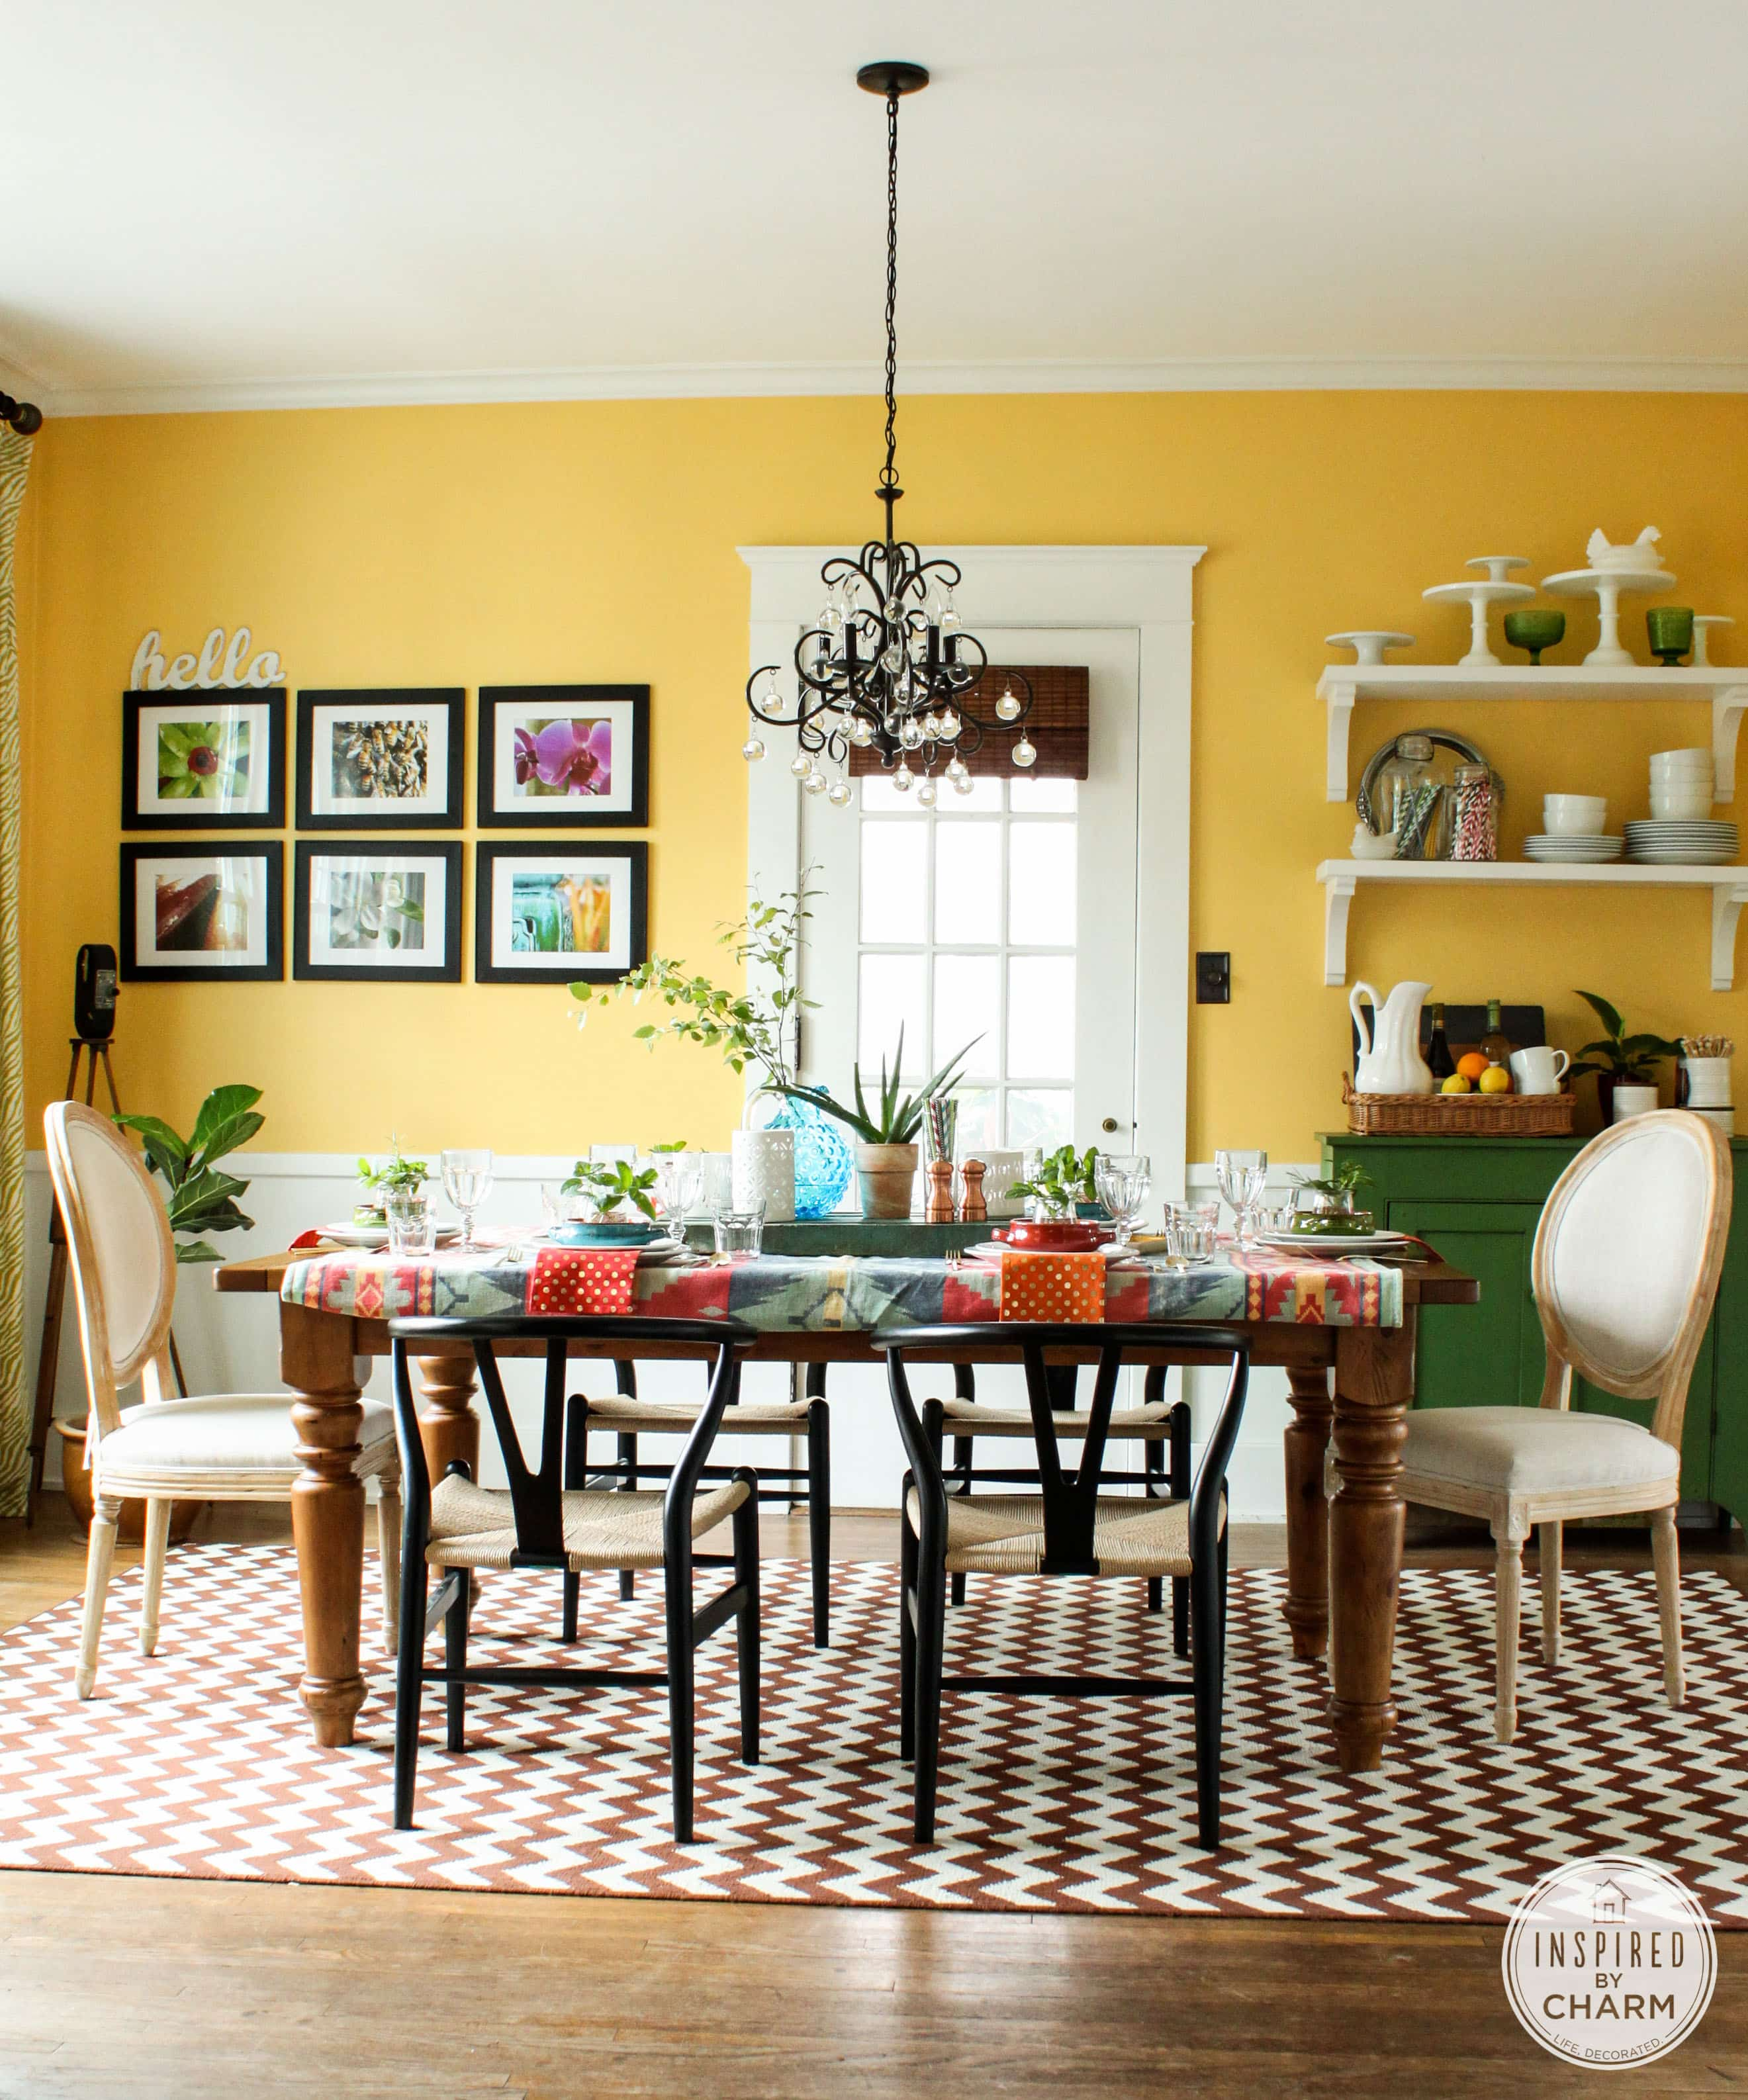 Kitchen Table Settings Round Dining Table Setting Ideas Interesting Furniture For Dining